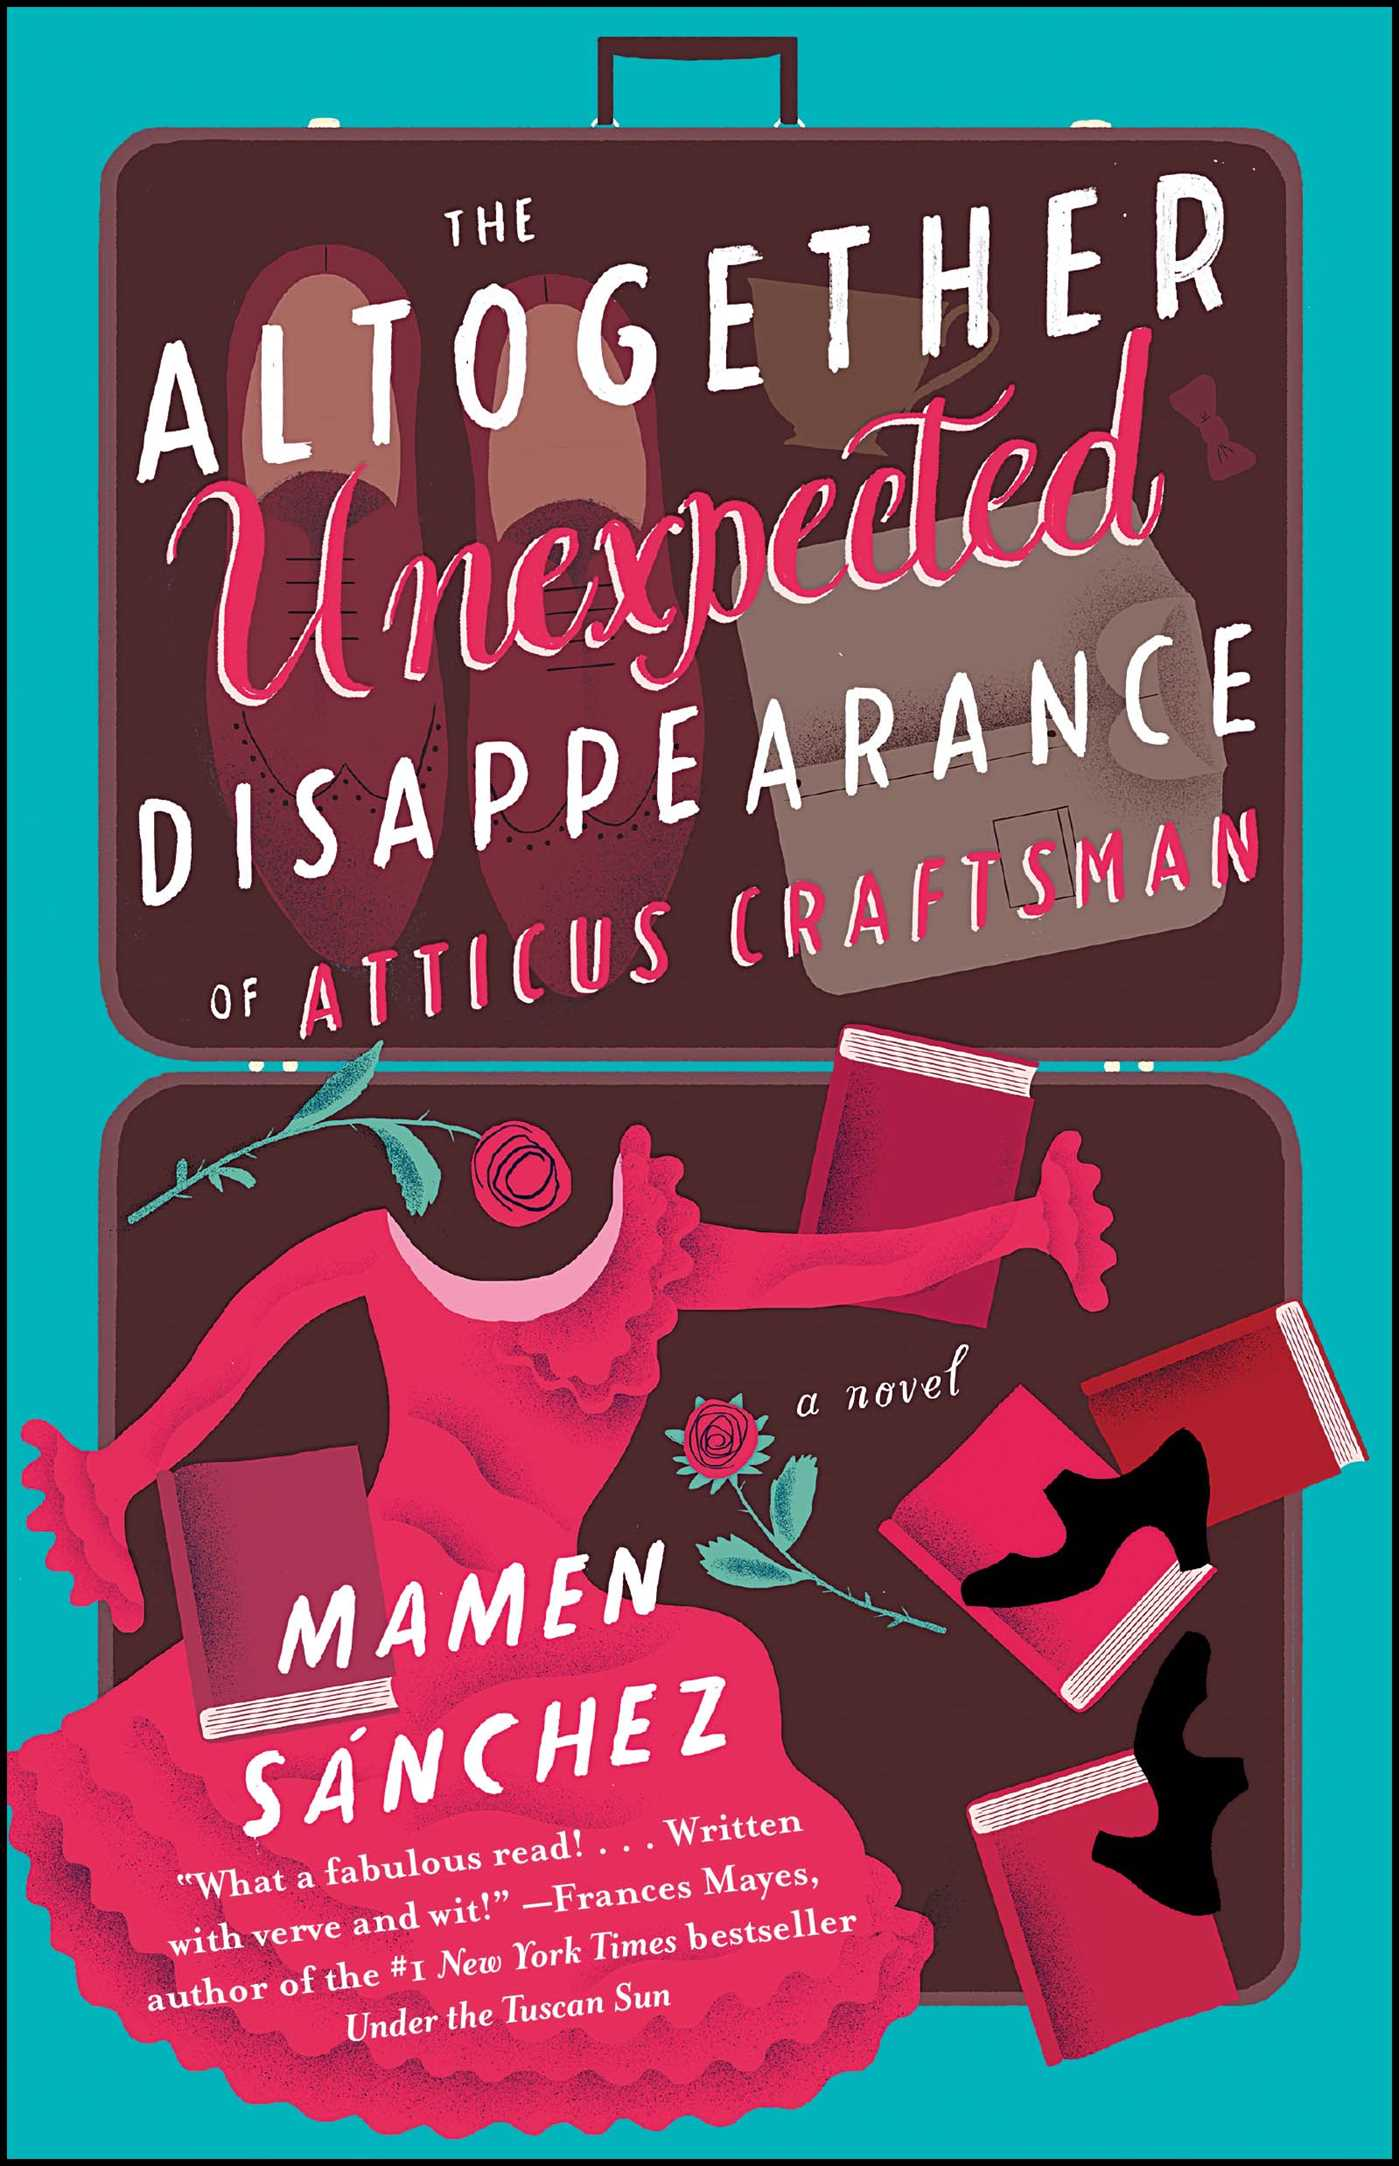 The Altogether Unexpected Disappearance of Atticus Craftsman A Novel